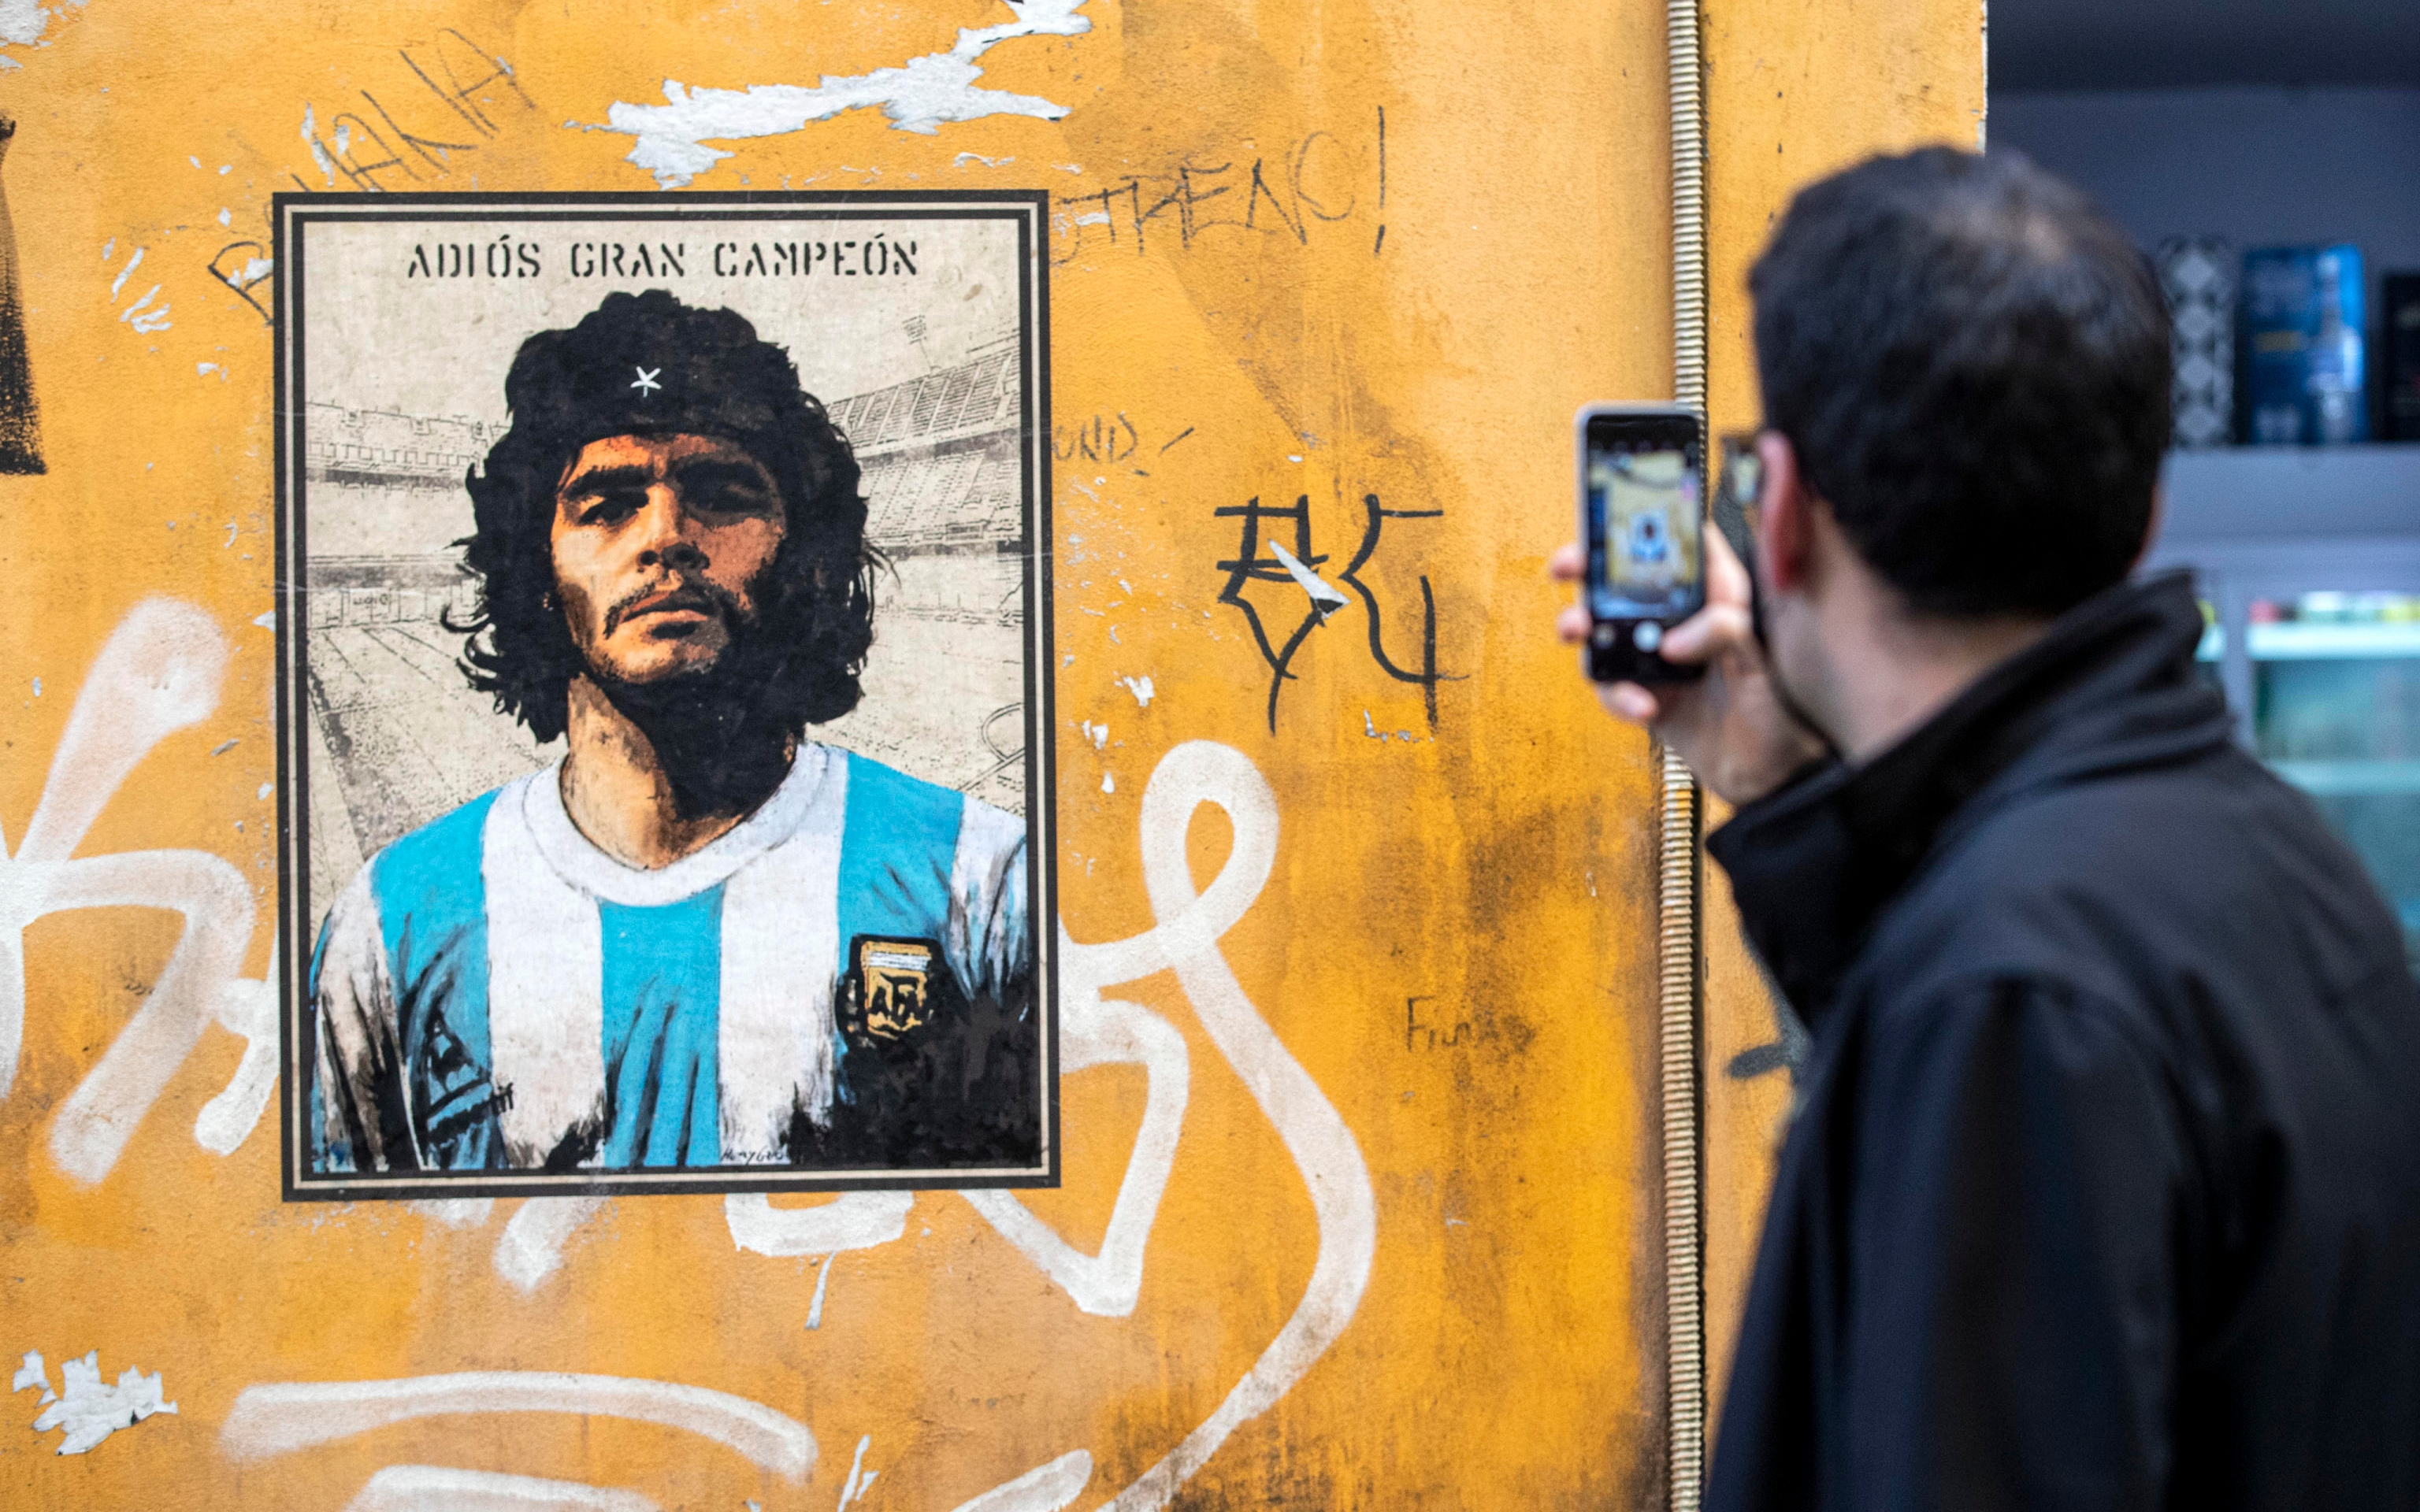 Mural dedicated to Diego Armando Maradona, in via del Politeama in the Trastevere district of Rome, 26 November 2020. The soccer legend died on 25 November at the age of 60 after a heart attack. ANSA/MASSIMO PERCOSSI